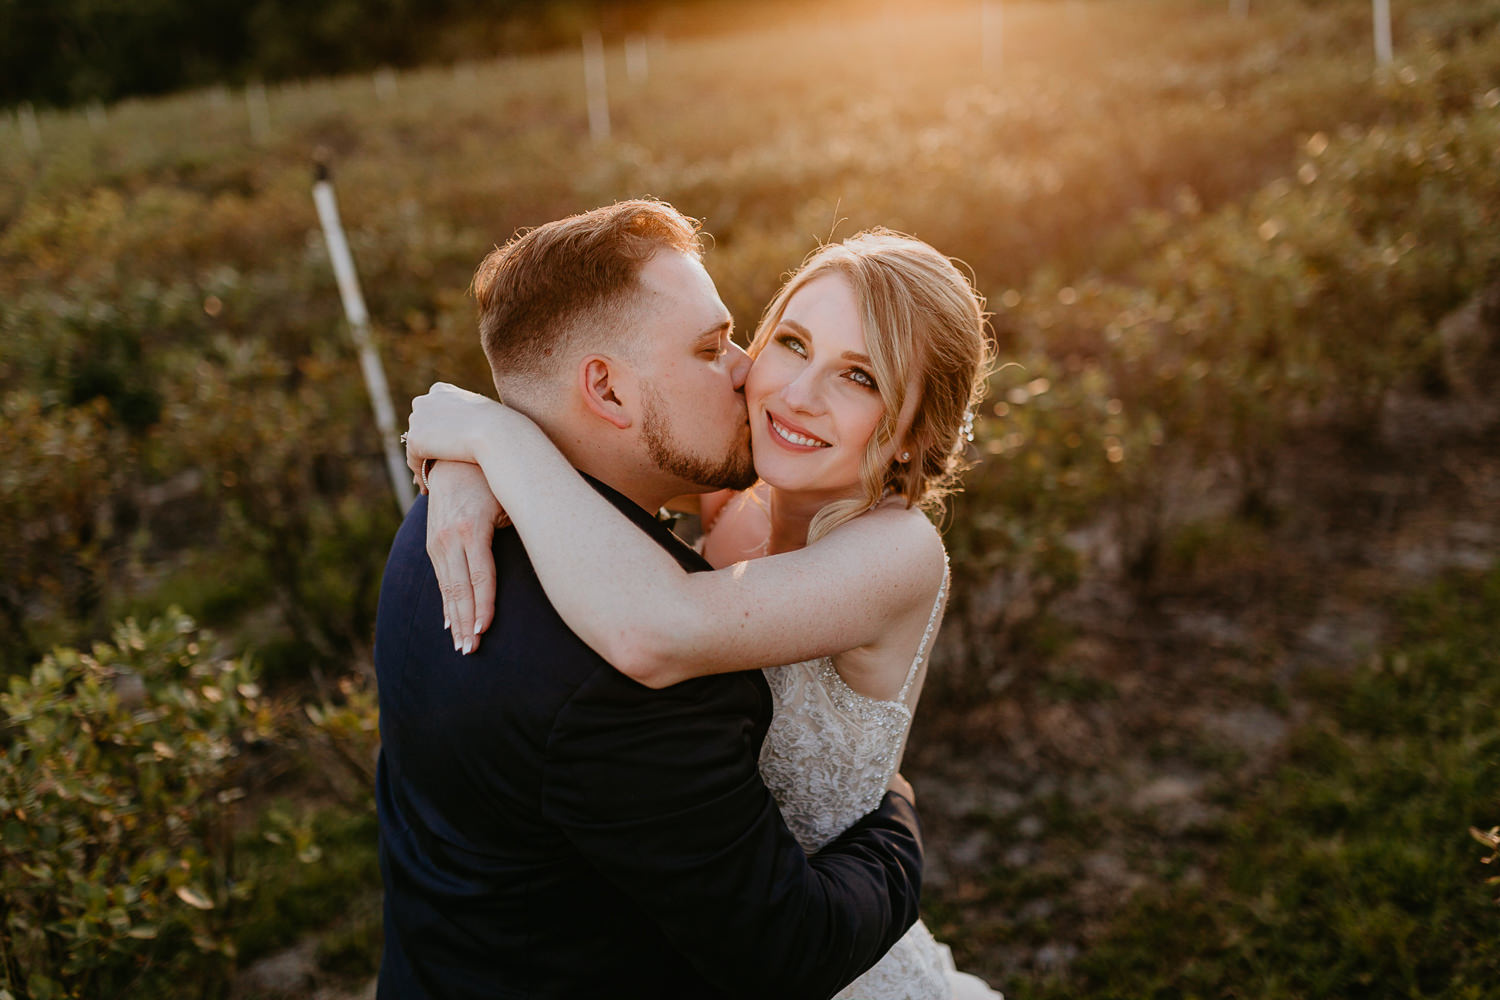 newlyweds intimately kissing with sunset flares